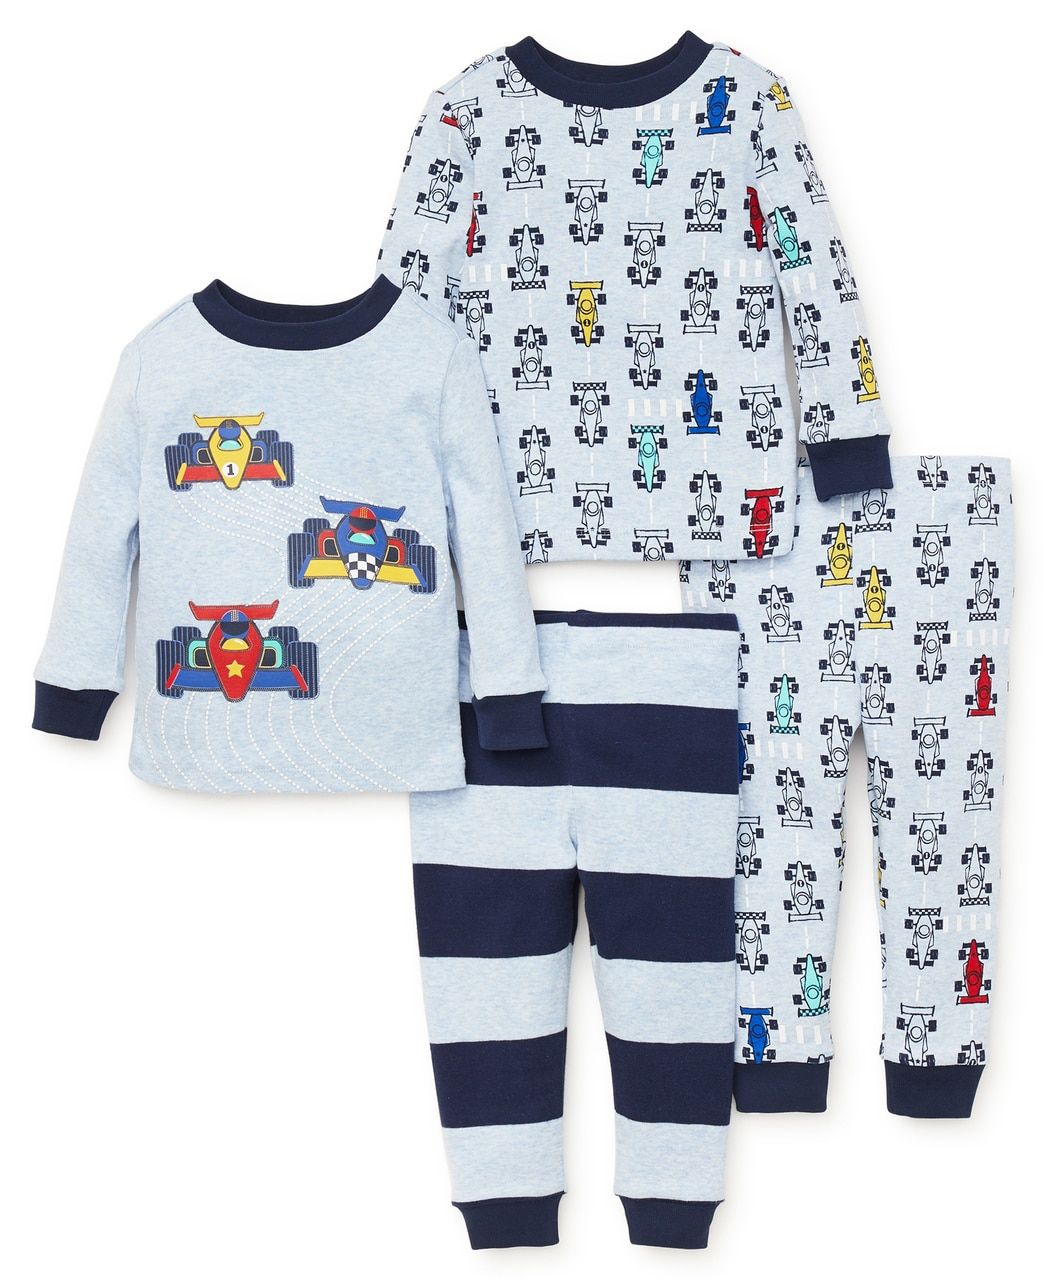 8a9ff9c229eddb Little Me | Boys Sleepwear | Race Car 4-Piece Pajama Set | Ellis 3T ...